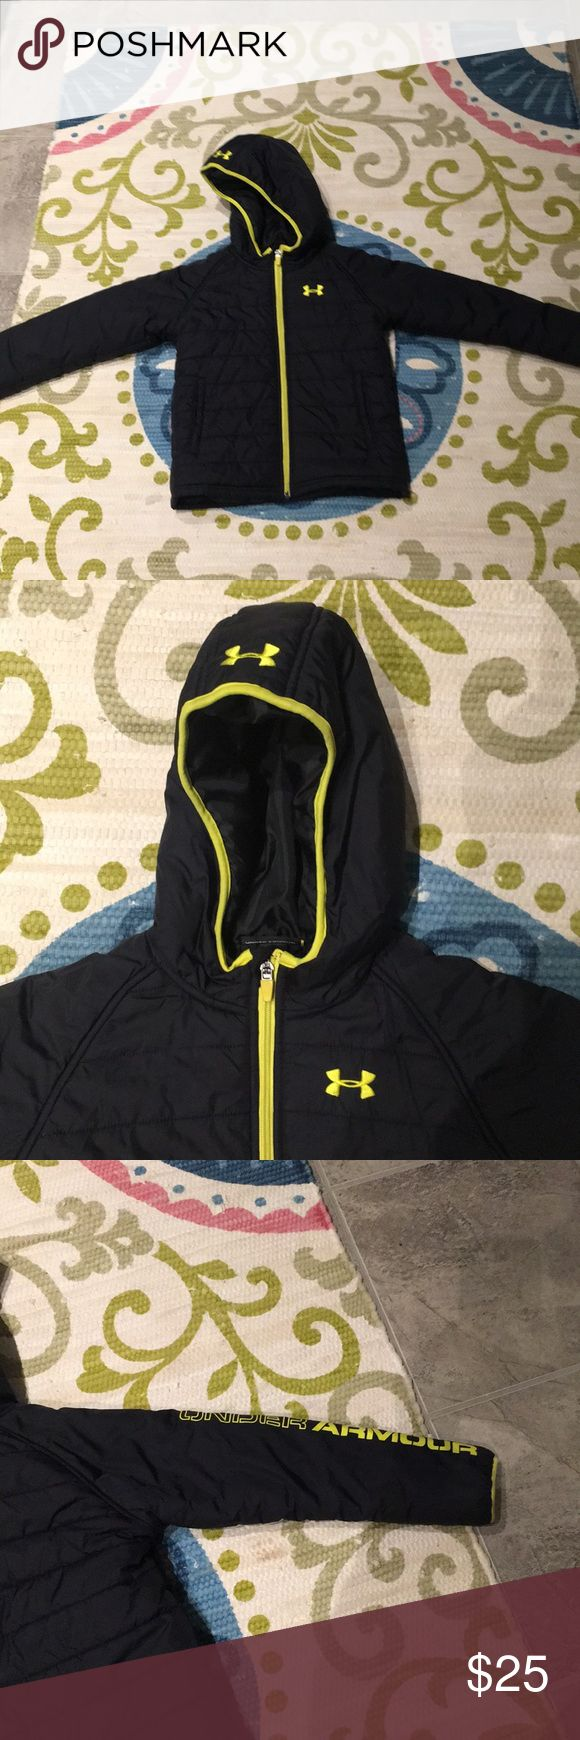 Boys under armour coat Boys under armour coat. Size 7. Under Armour Jackets & Coats Puffers